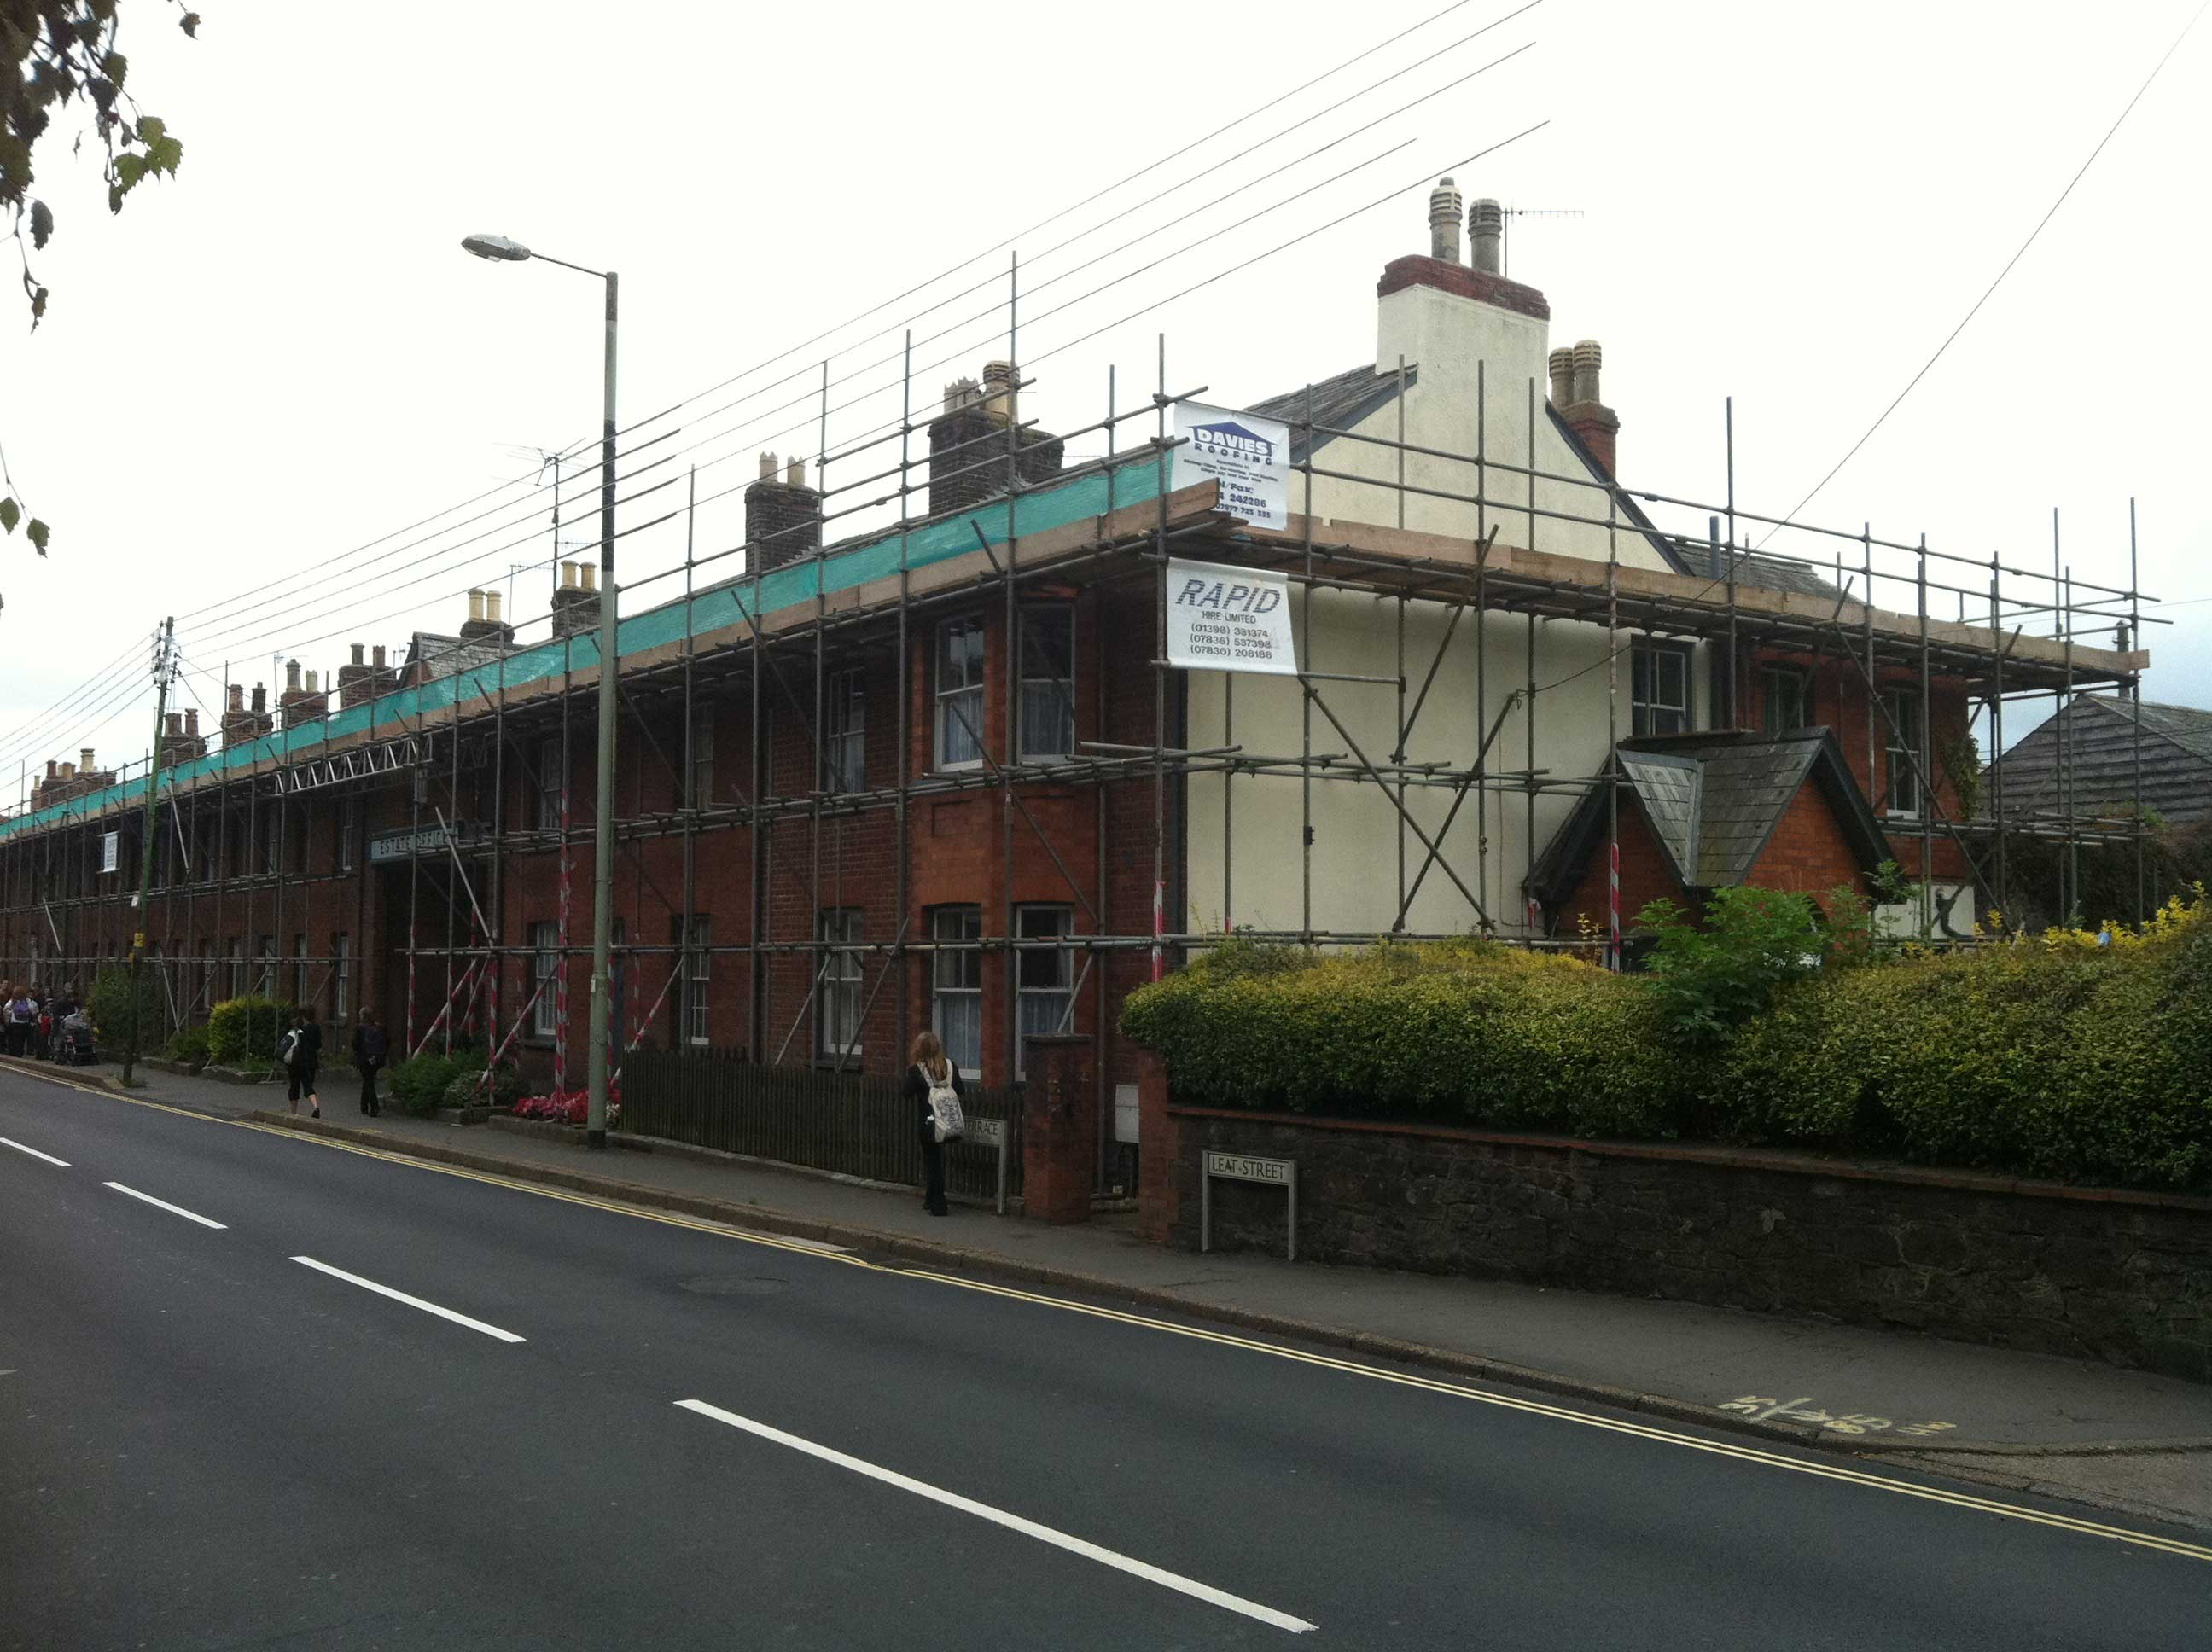 Scaffolding Contractors Exeter and Tiverton - Rapid Scaffold Ltd